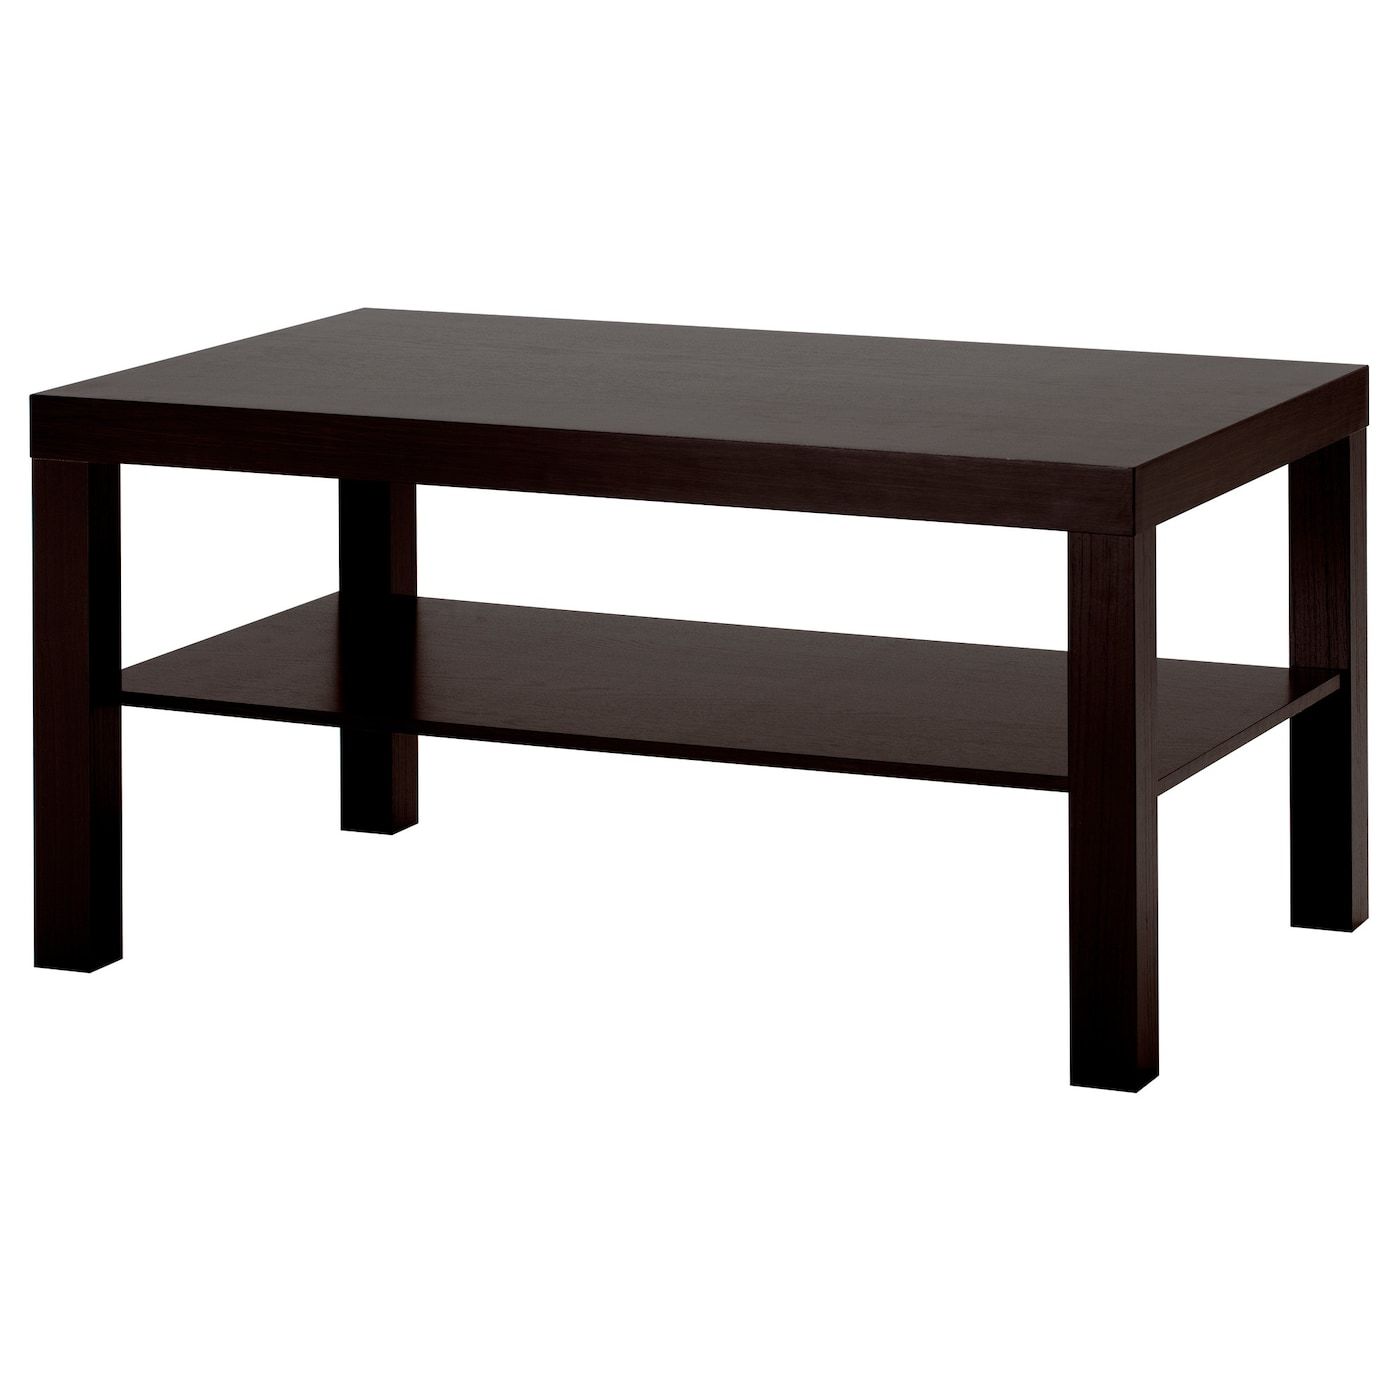 Lack coffee table black brown 90x55 cm ikea for Table en pin ikea